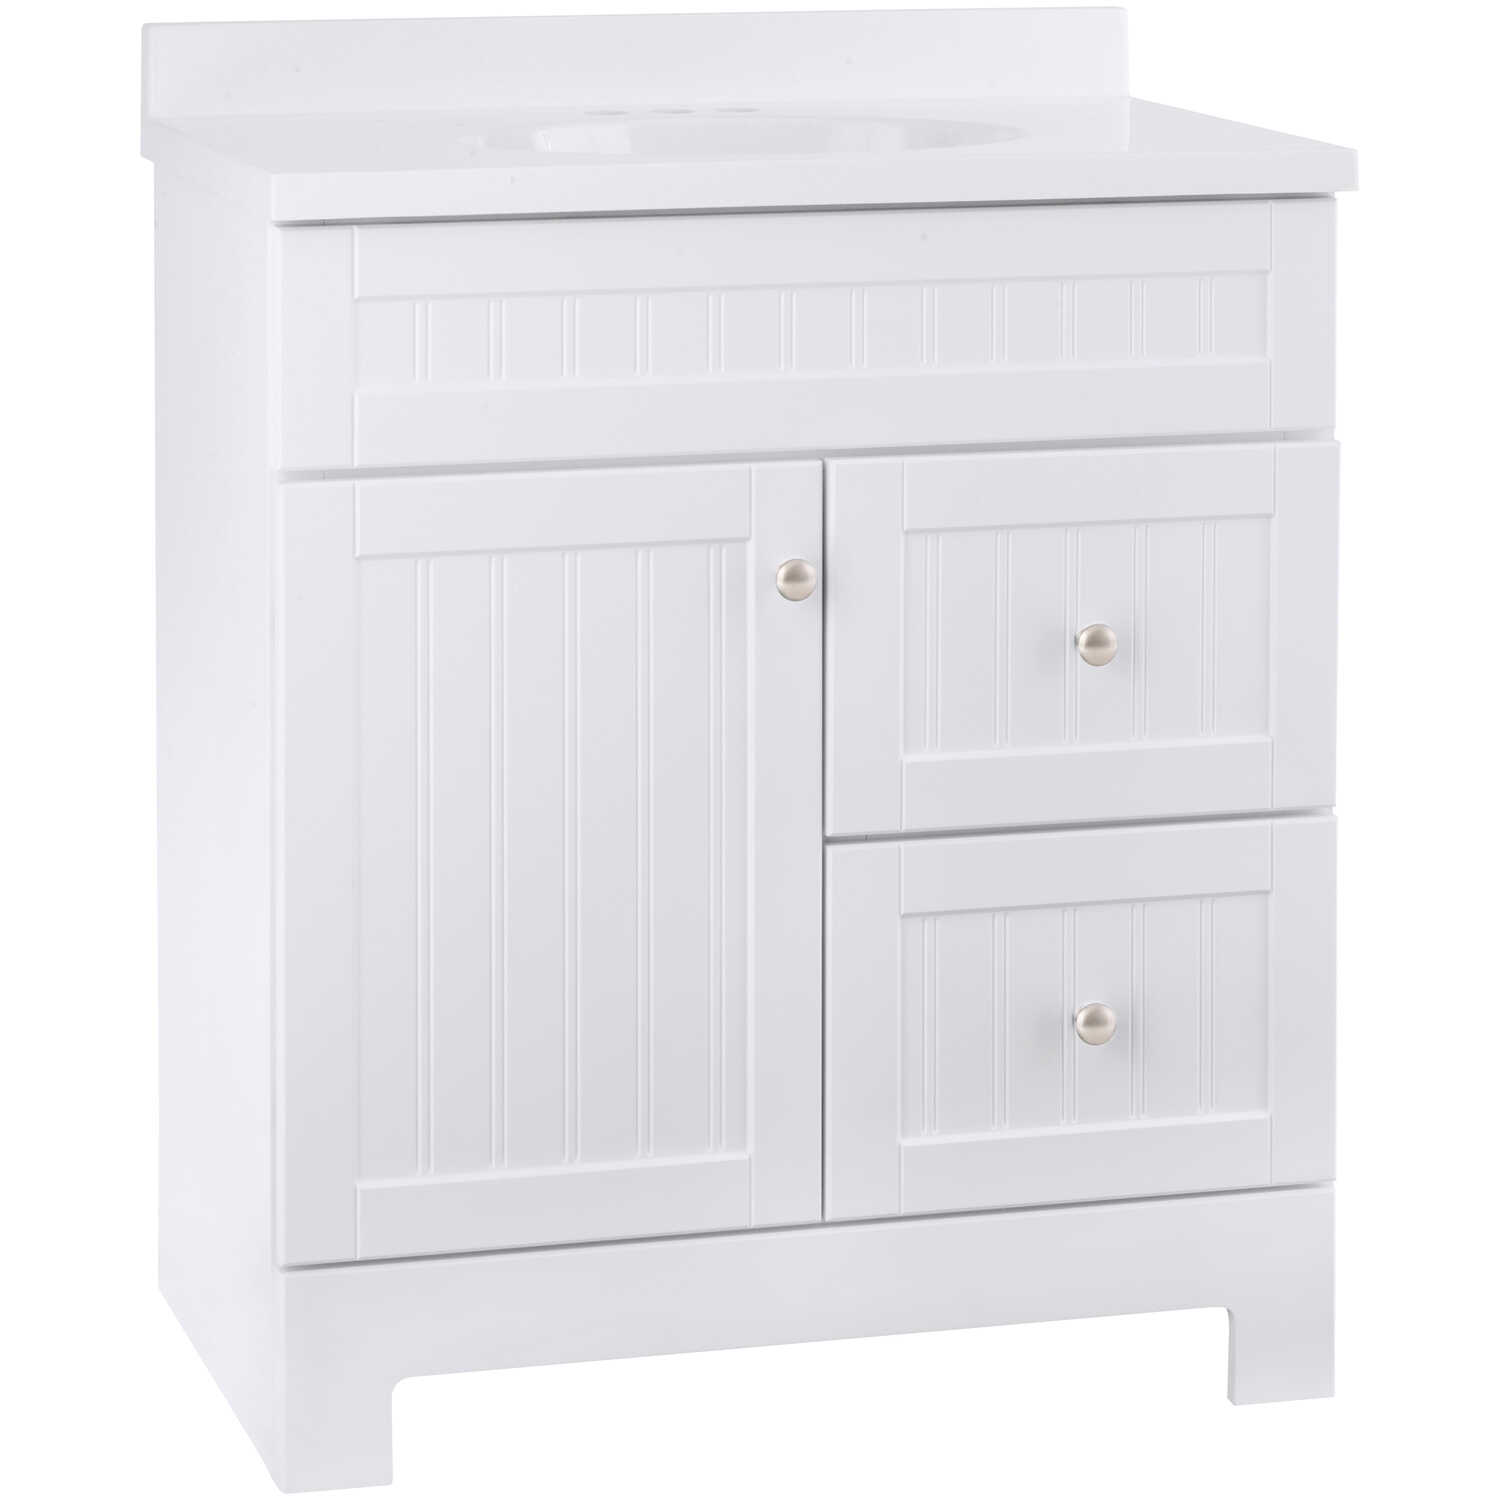 Continental Cabinets  Edgewater  Single  White  Vanity Combo  30 in. W x 18 in. D x 33-1/2 in. H